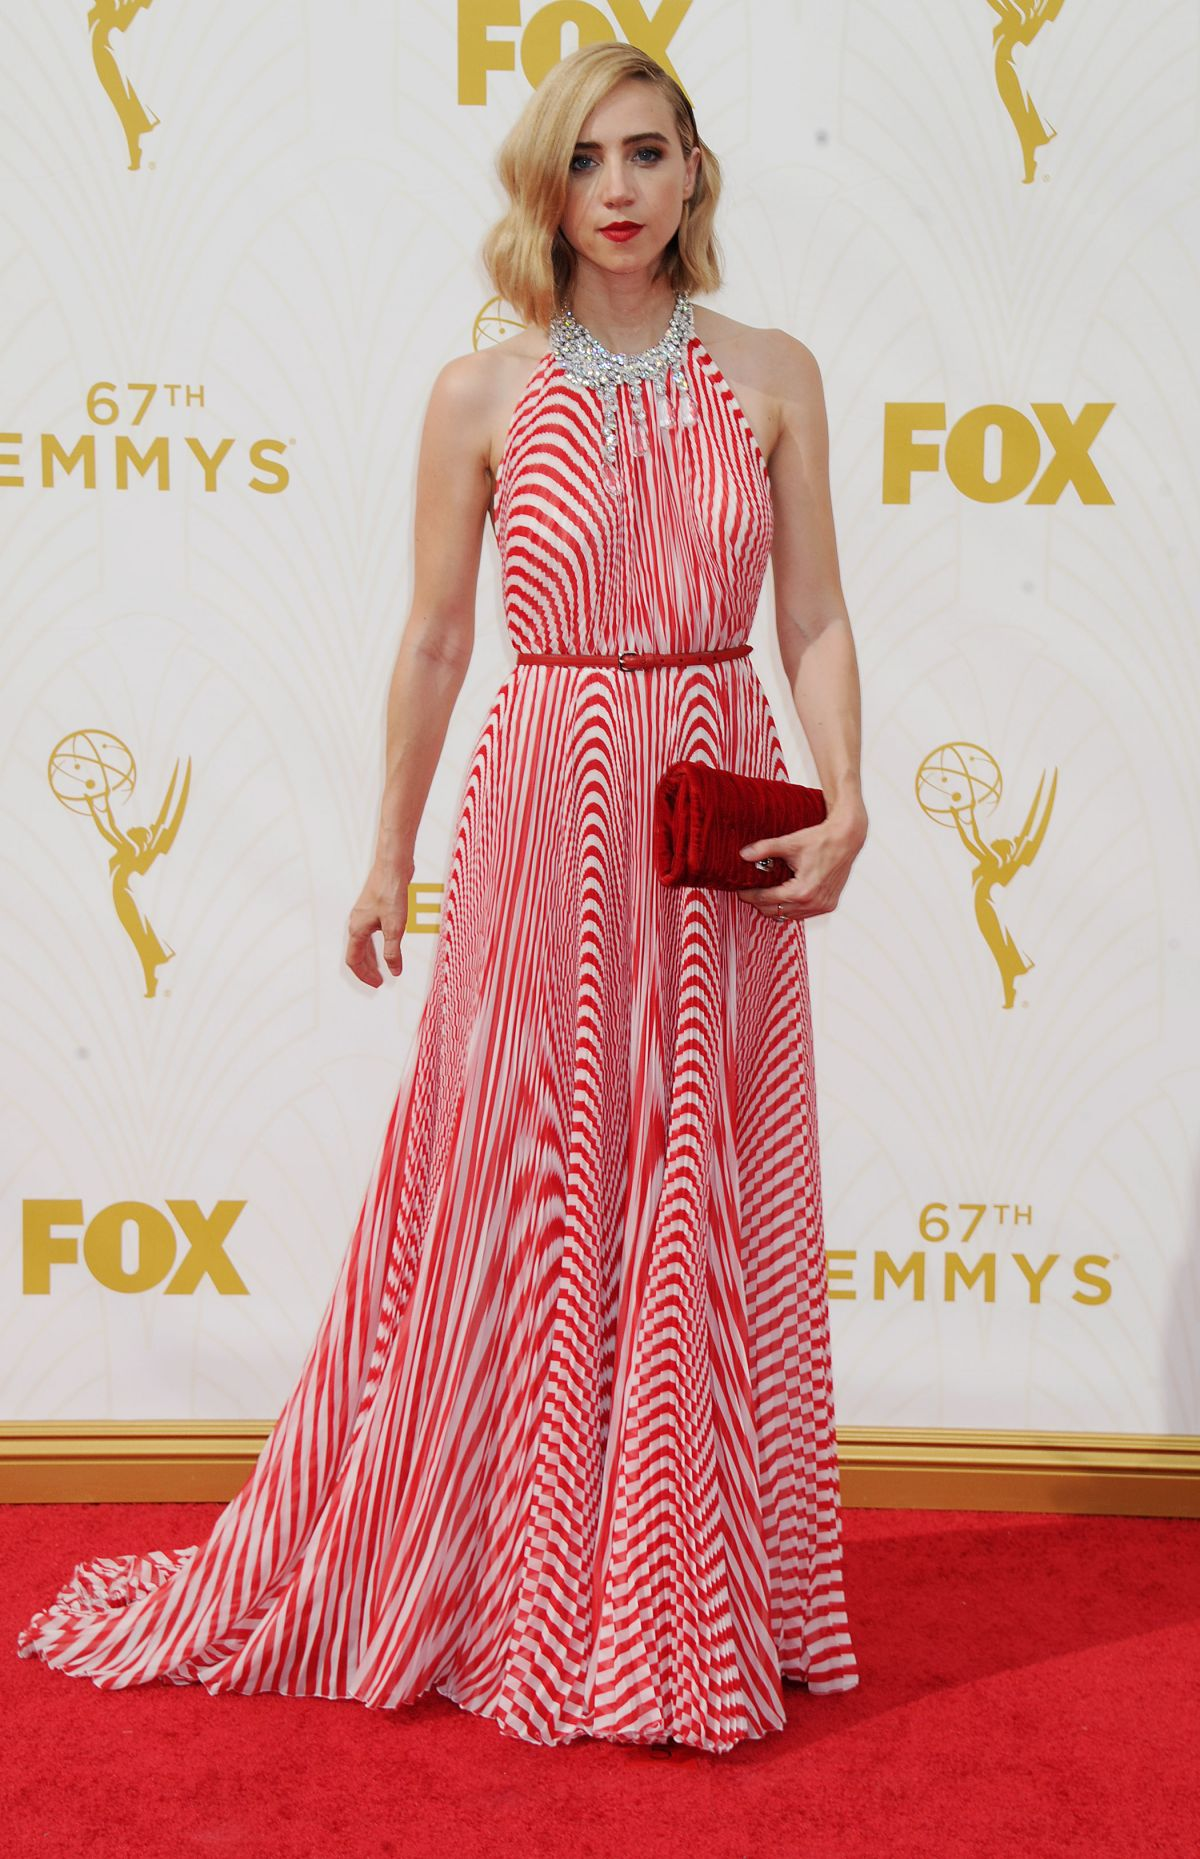 Daytime Emmy Awards 2018 Red Carpet Fashion: See All the 69